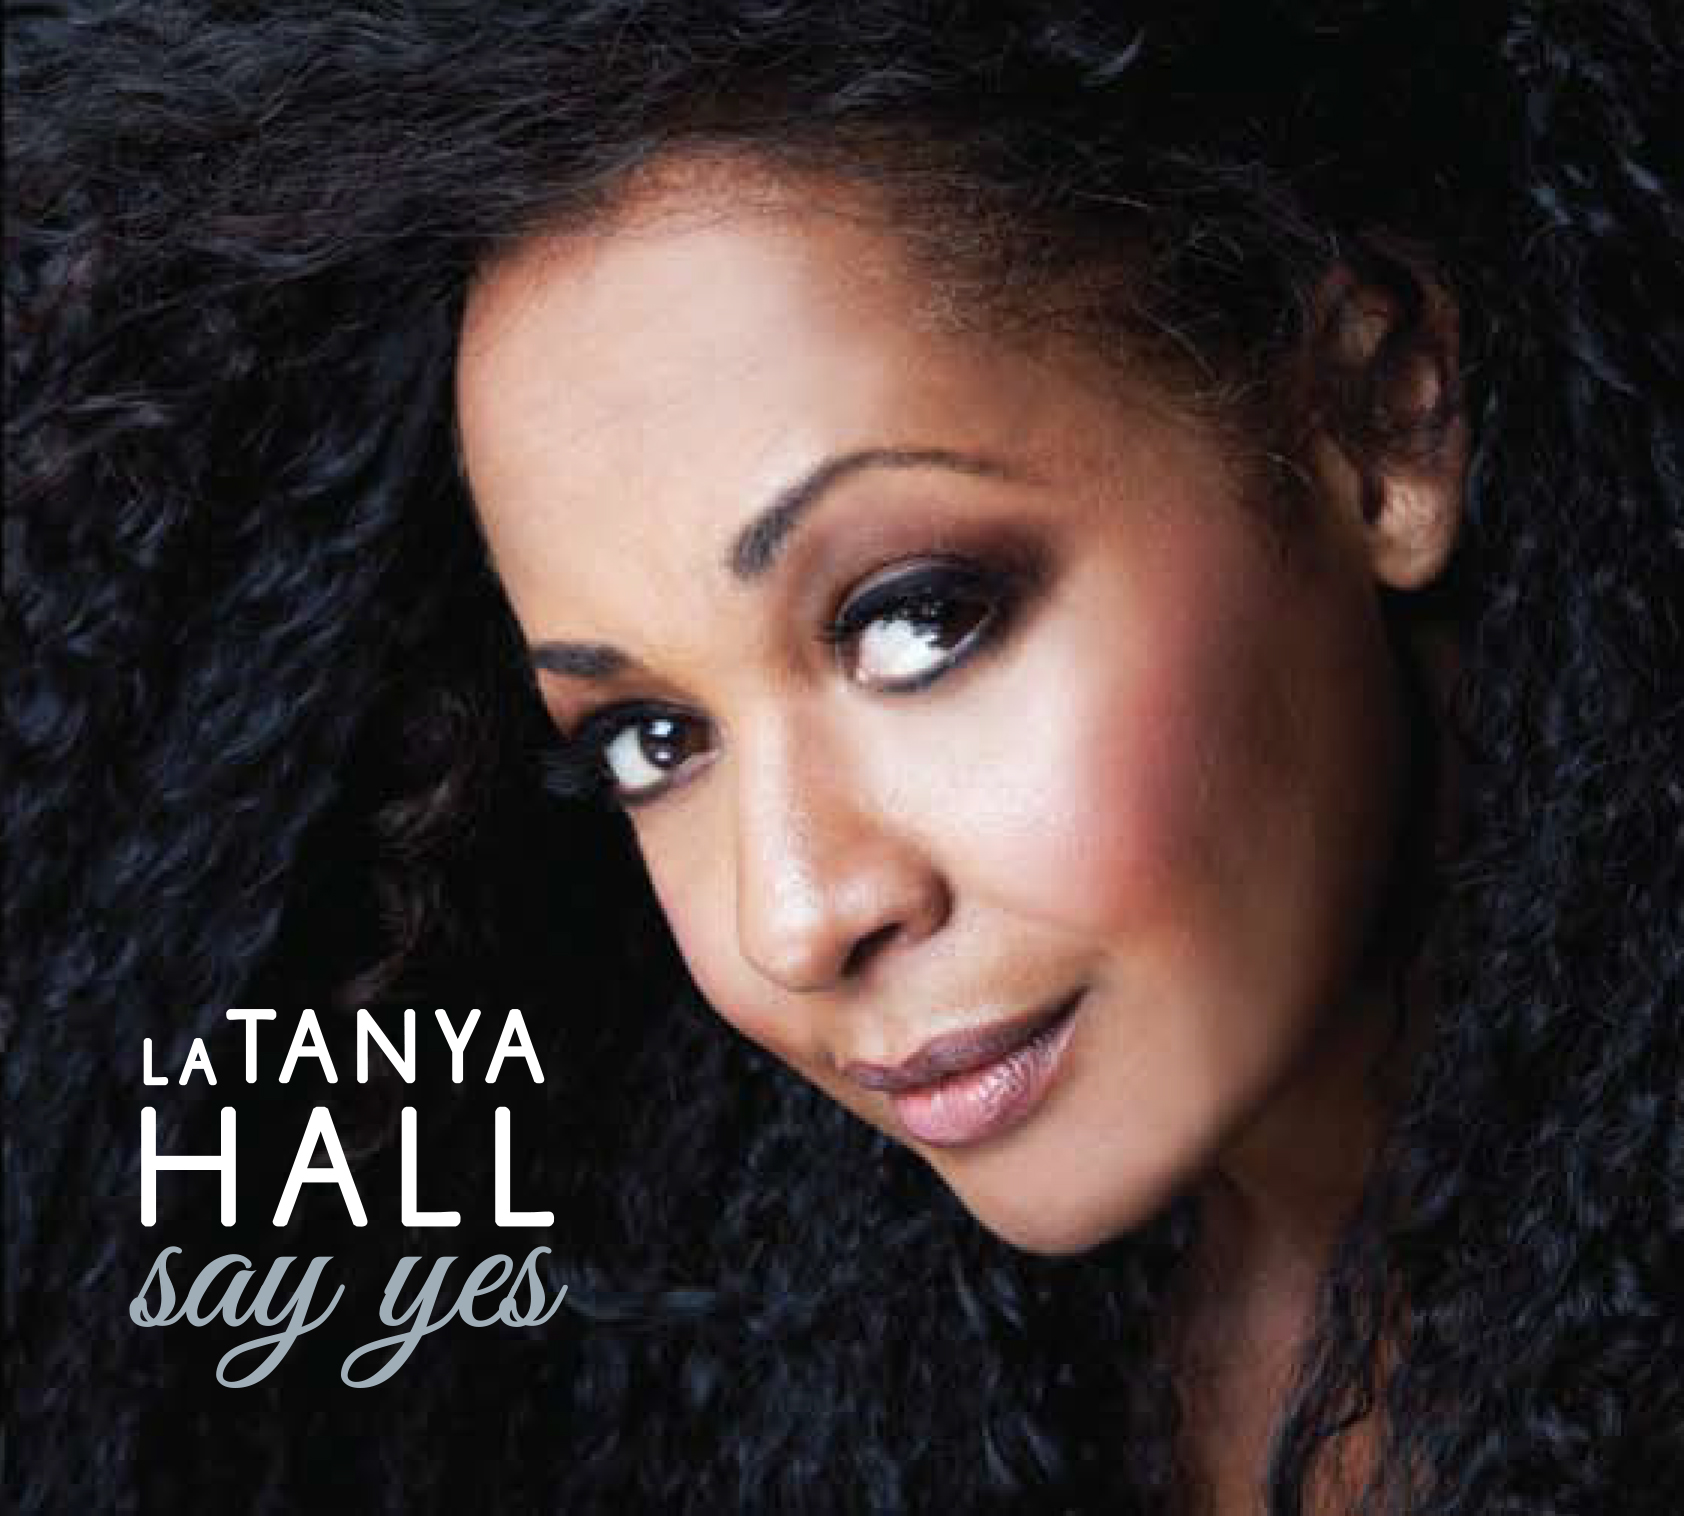 REVIEW: La Tanya Hall Reviewed by Cleveland Classical